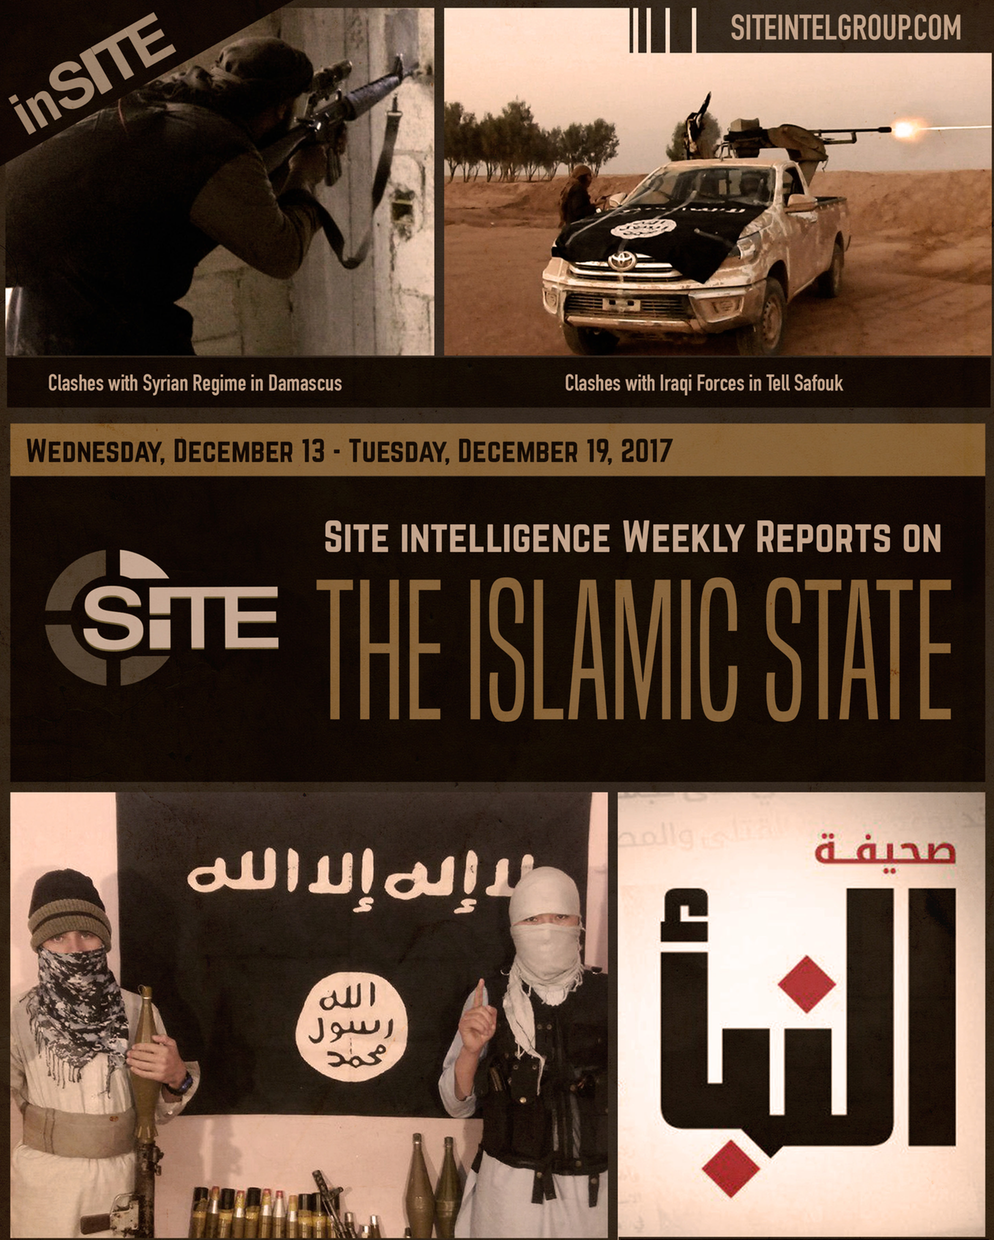 Weekly inSITE on the Islamic State, December 13-19